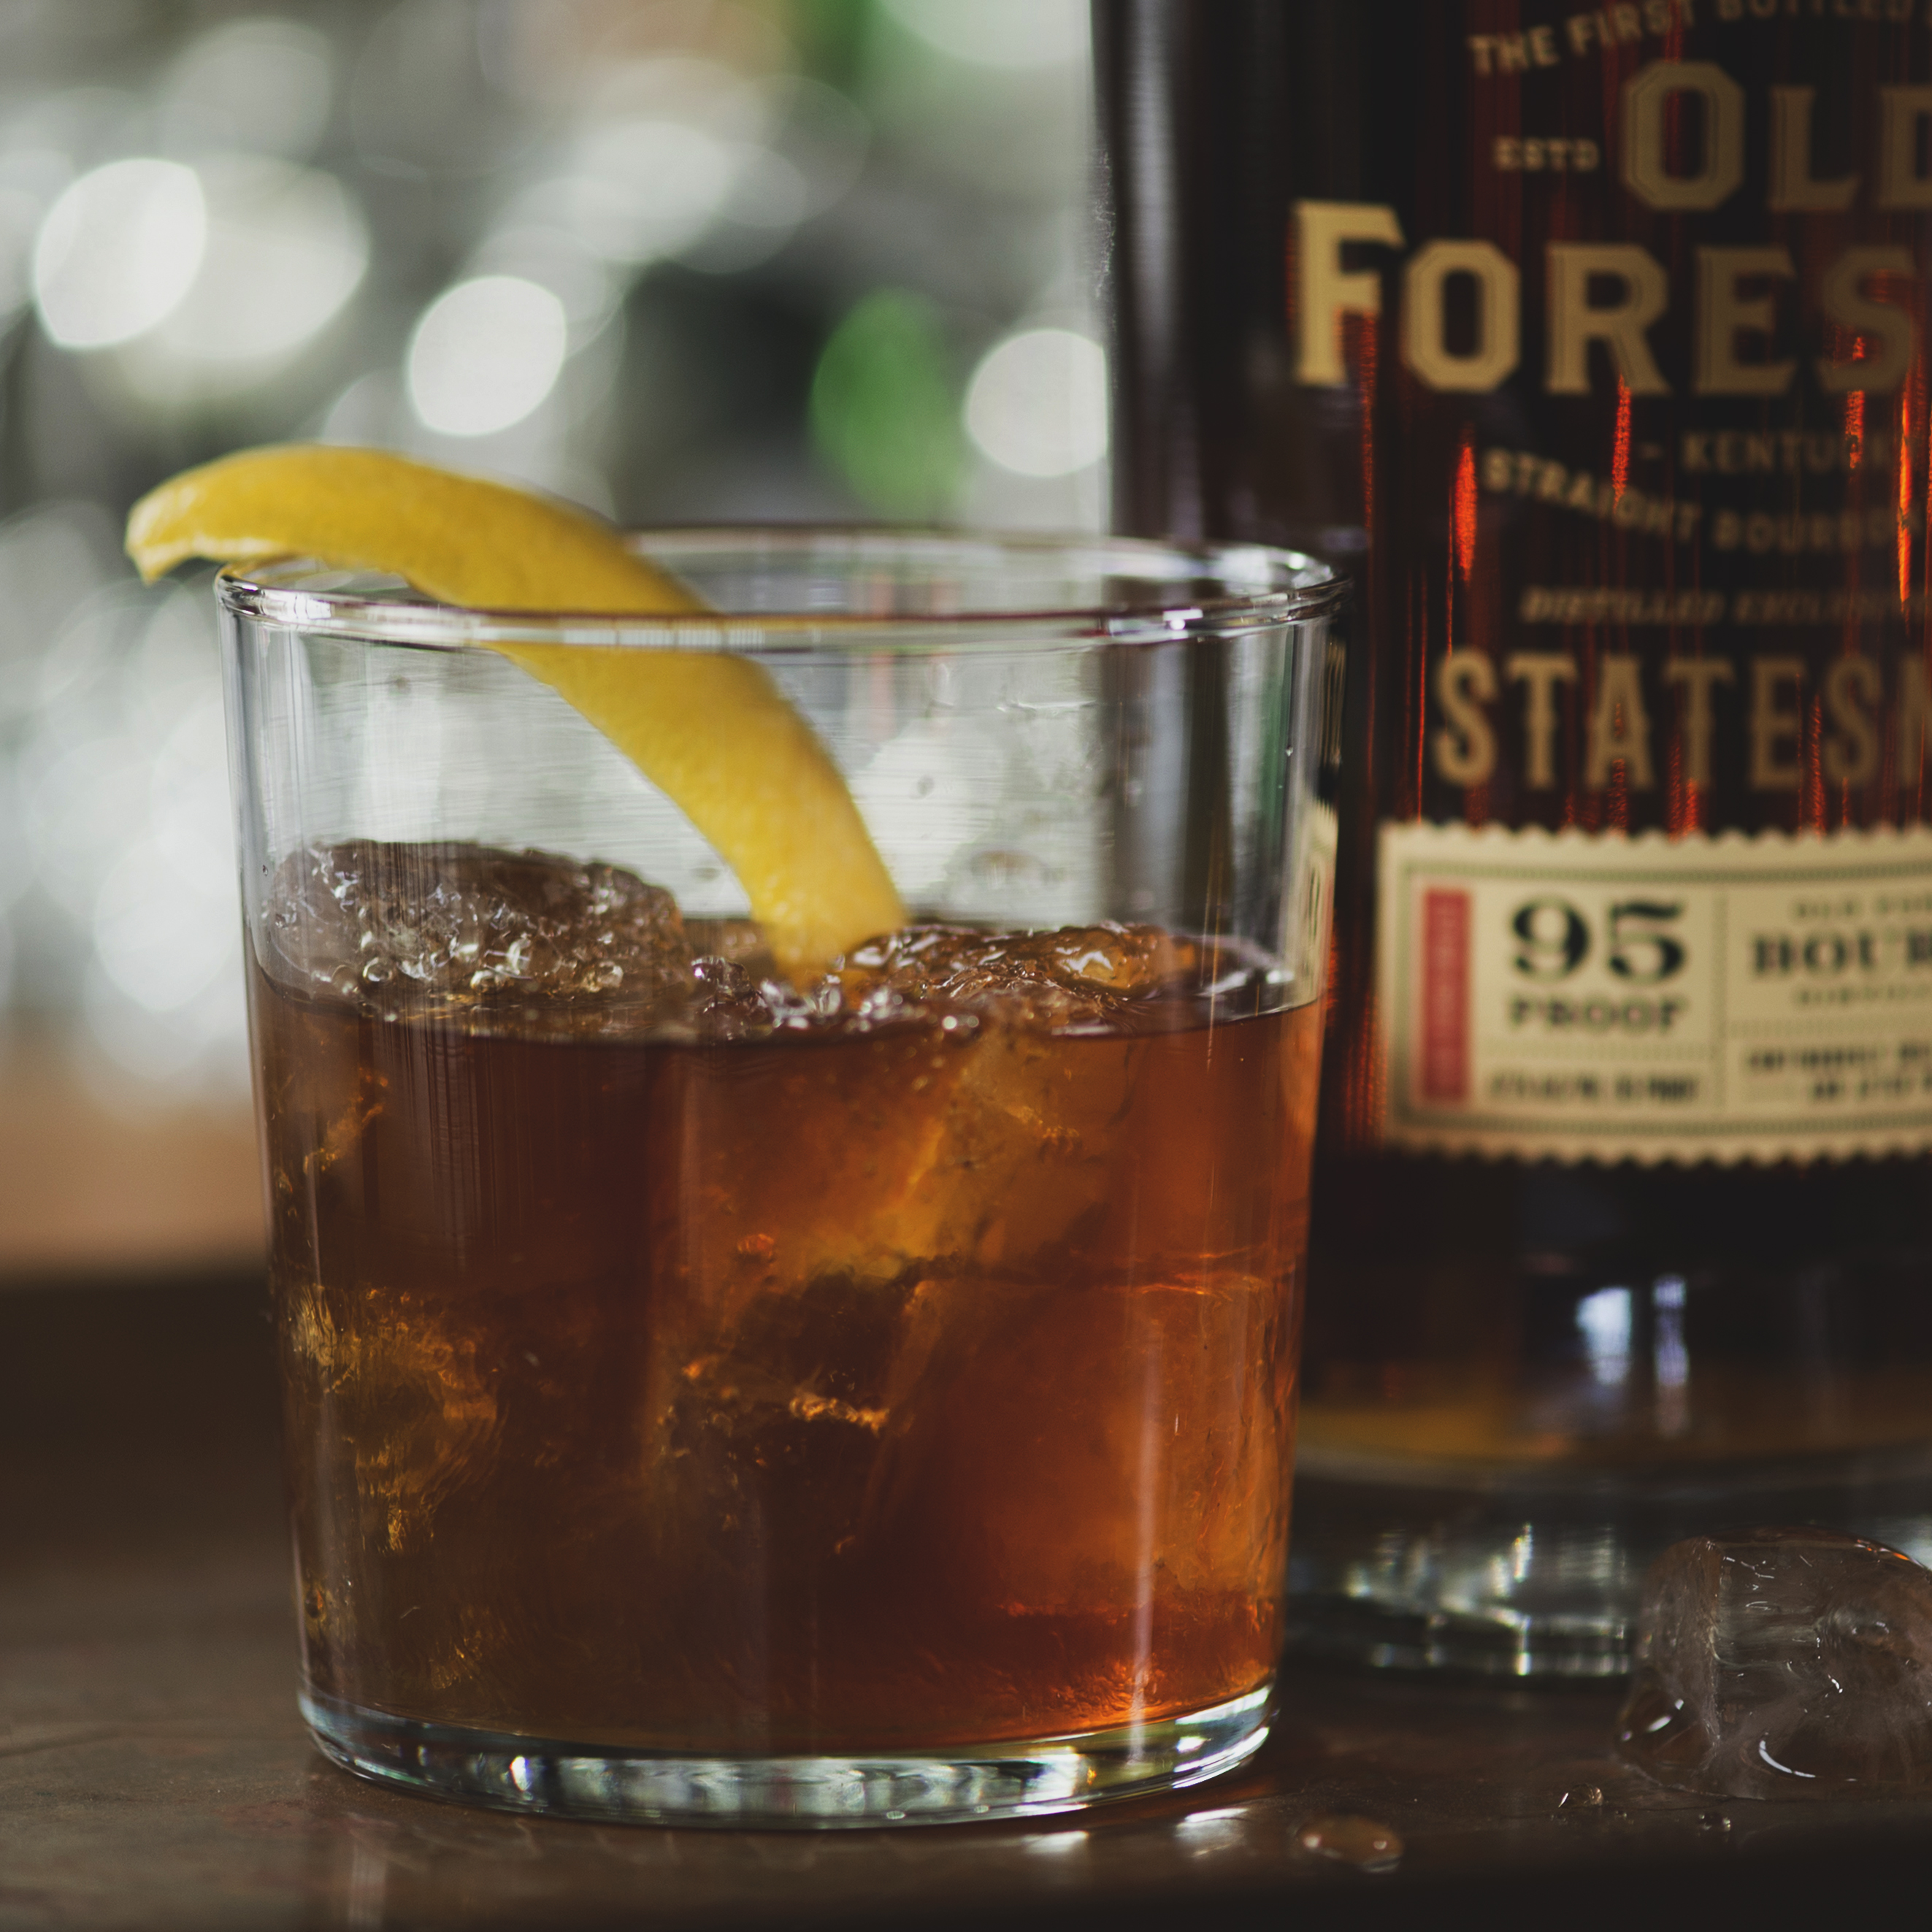 Statesman Cocktails